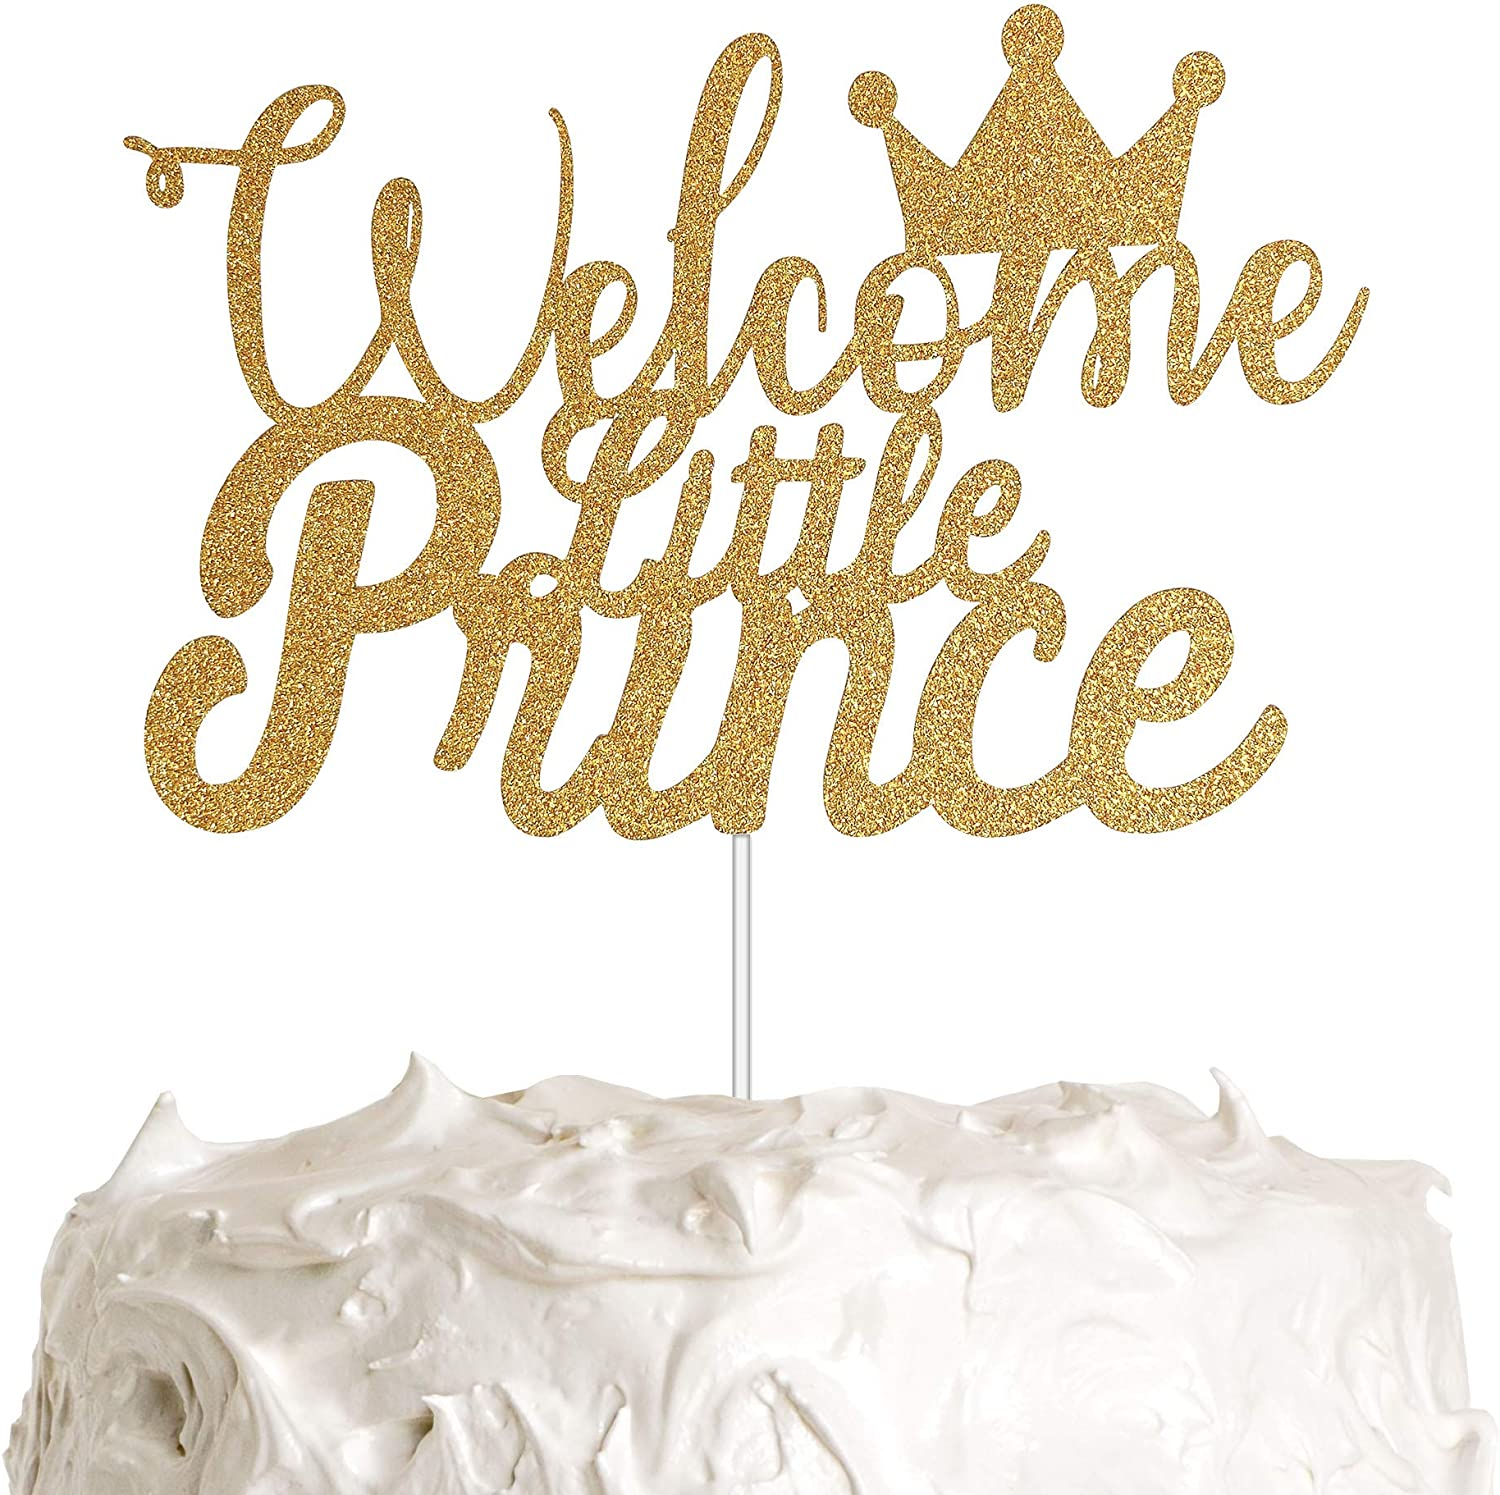 Welcome Little Prince with Crown Cake Topper for Boy Baby Shower Party Decorations with Gold Glitter